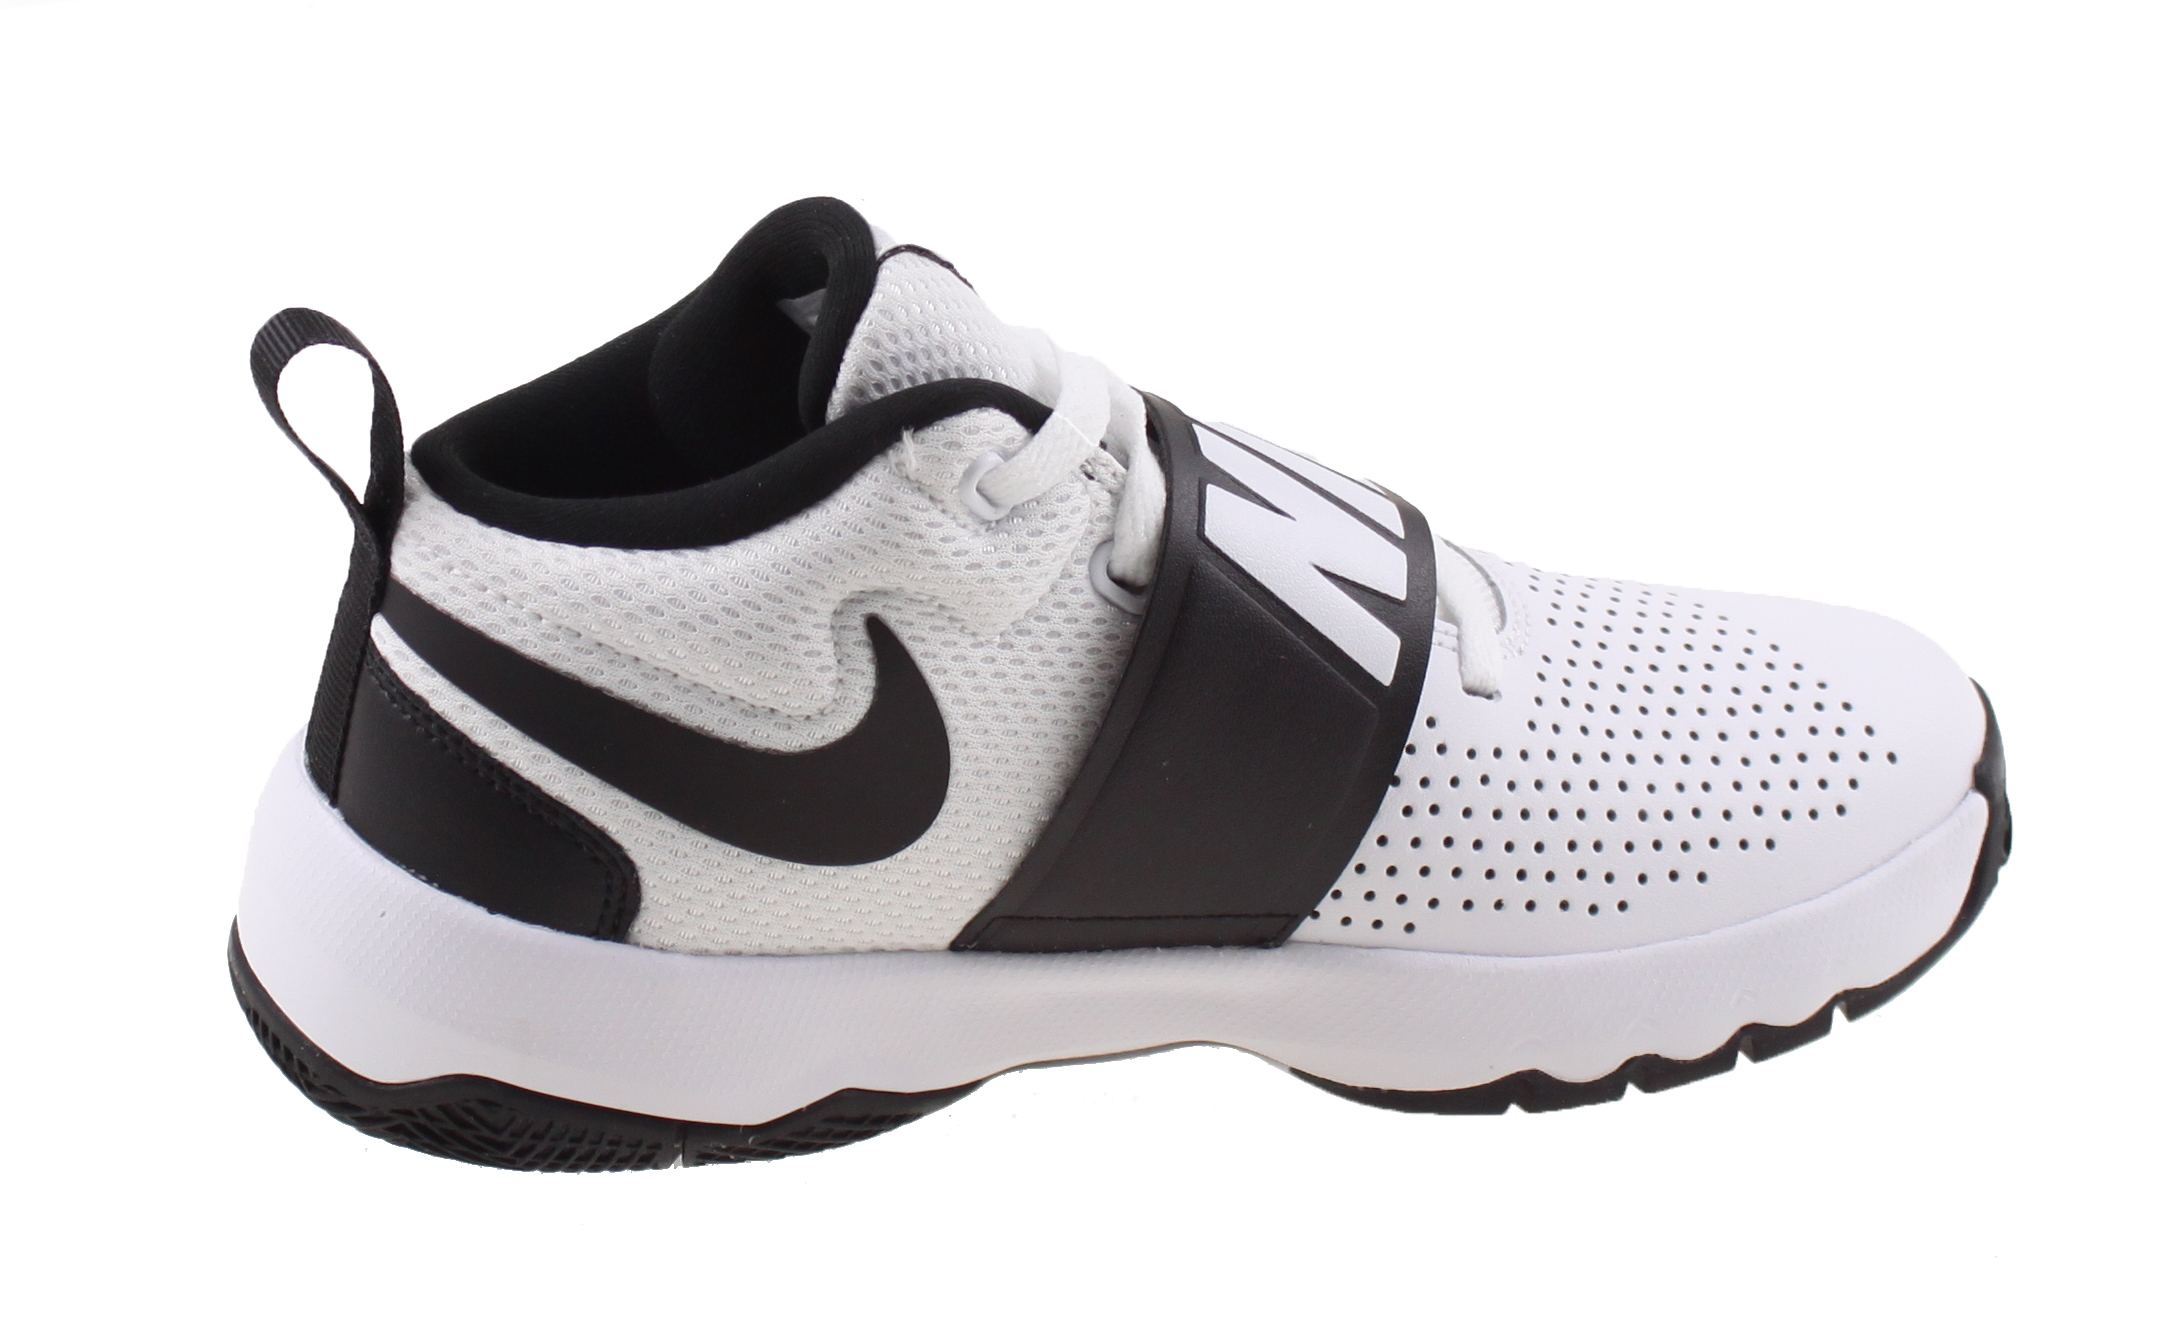 41a73034022 Nike Team Hustle D 8. 881941 100. Product afbeelding Product afbeelding  Product afbeelding